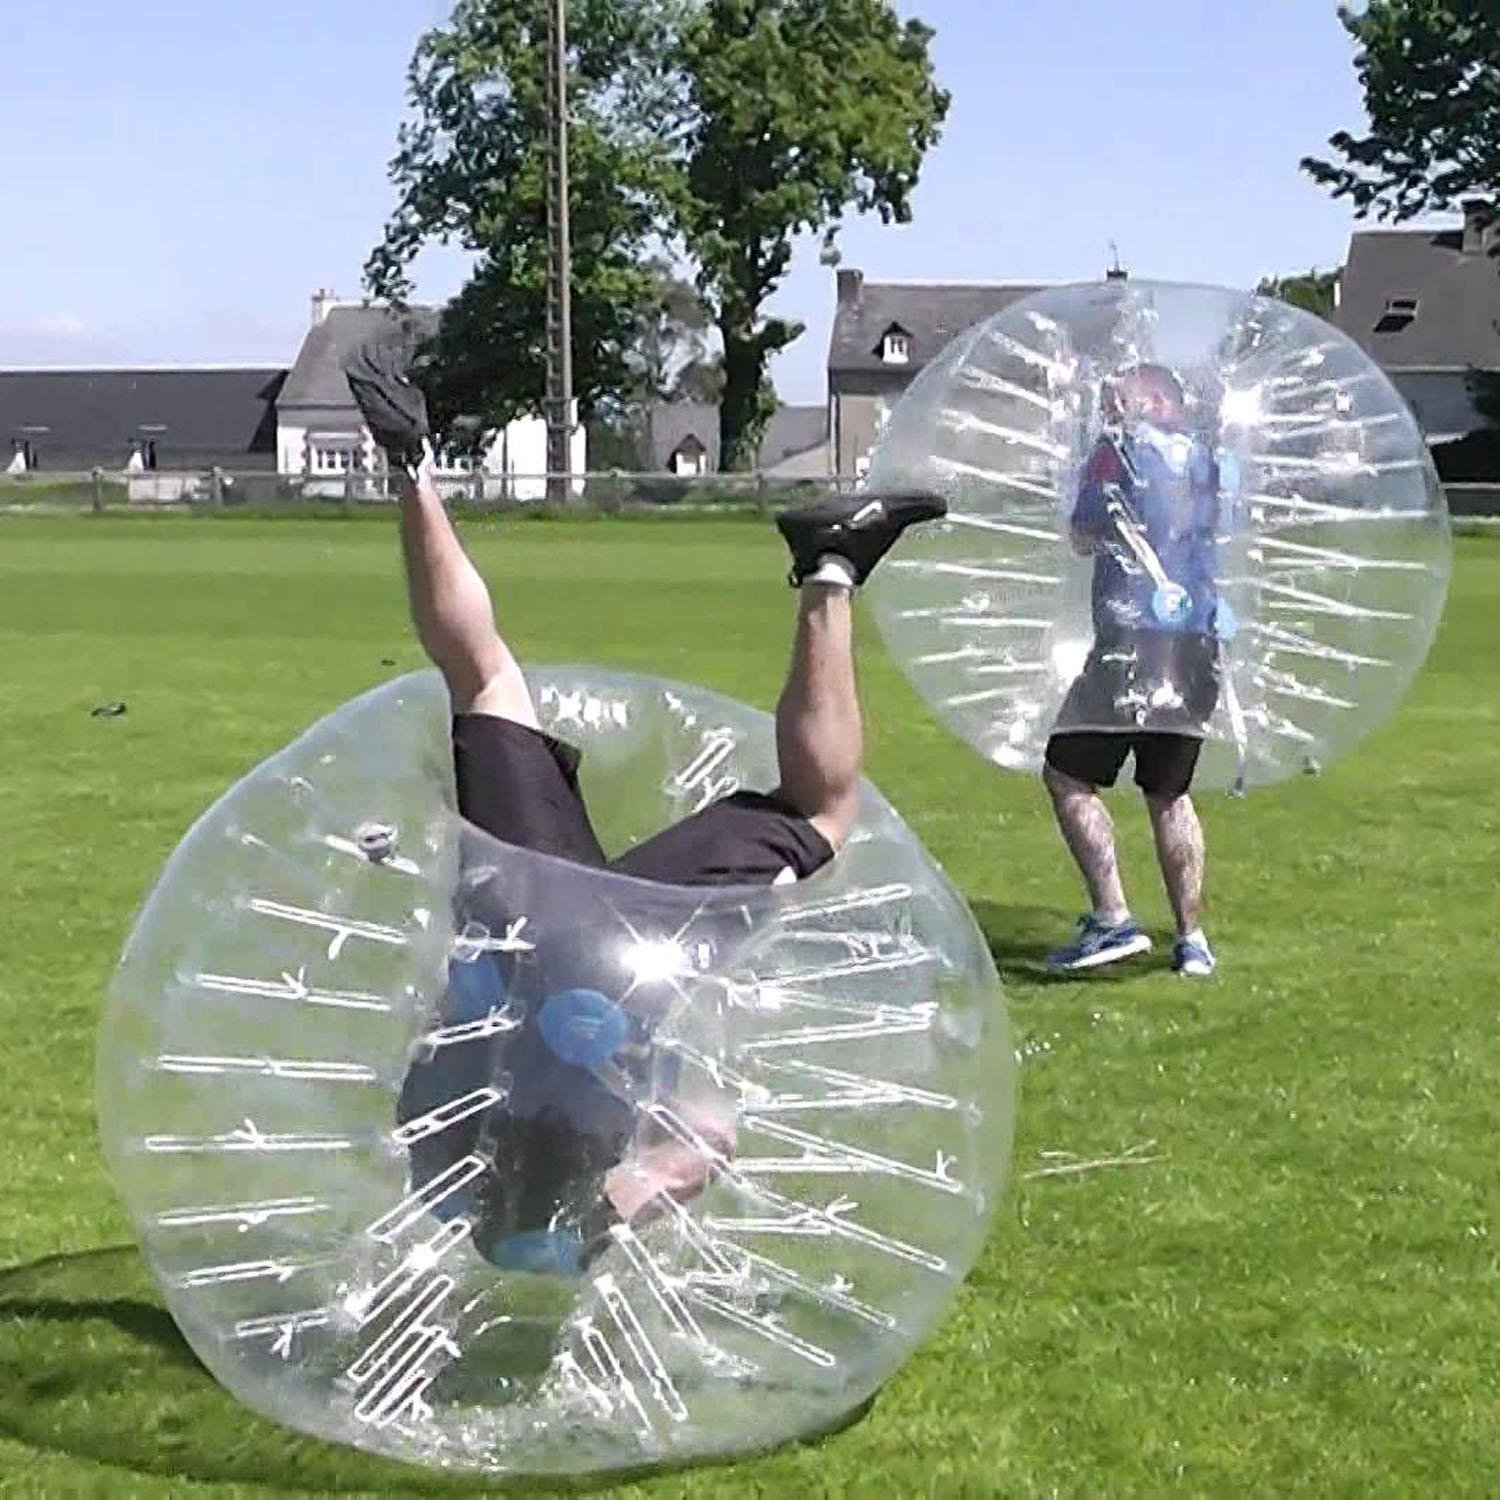 Inflatable Body Bubble Soccer Ball Transparent Human Bumper Knocker Zorb Ball for Adults and Kids 1.5M Diameter [US STOCK] by Evokem